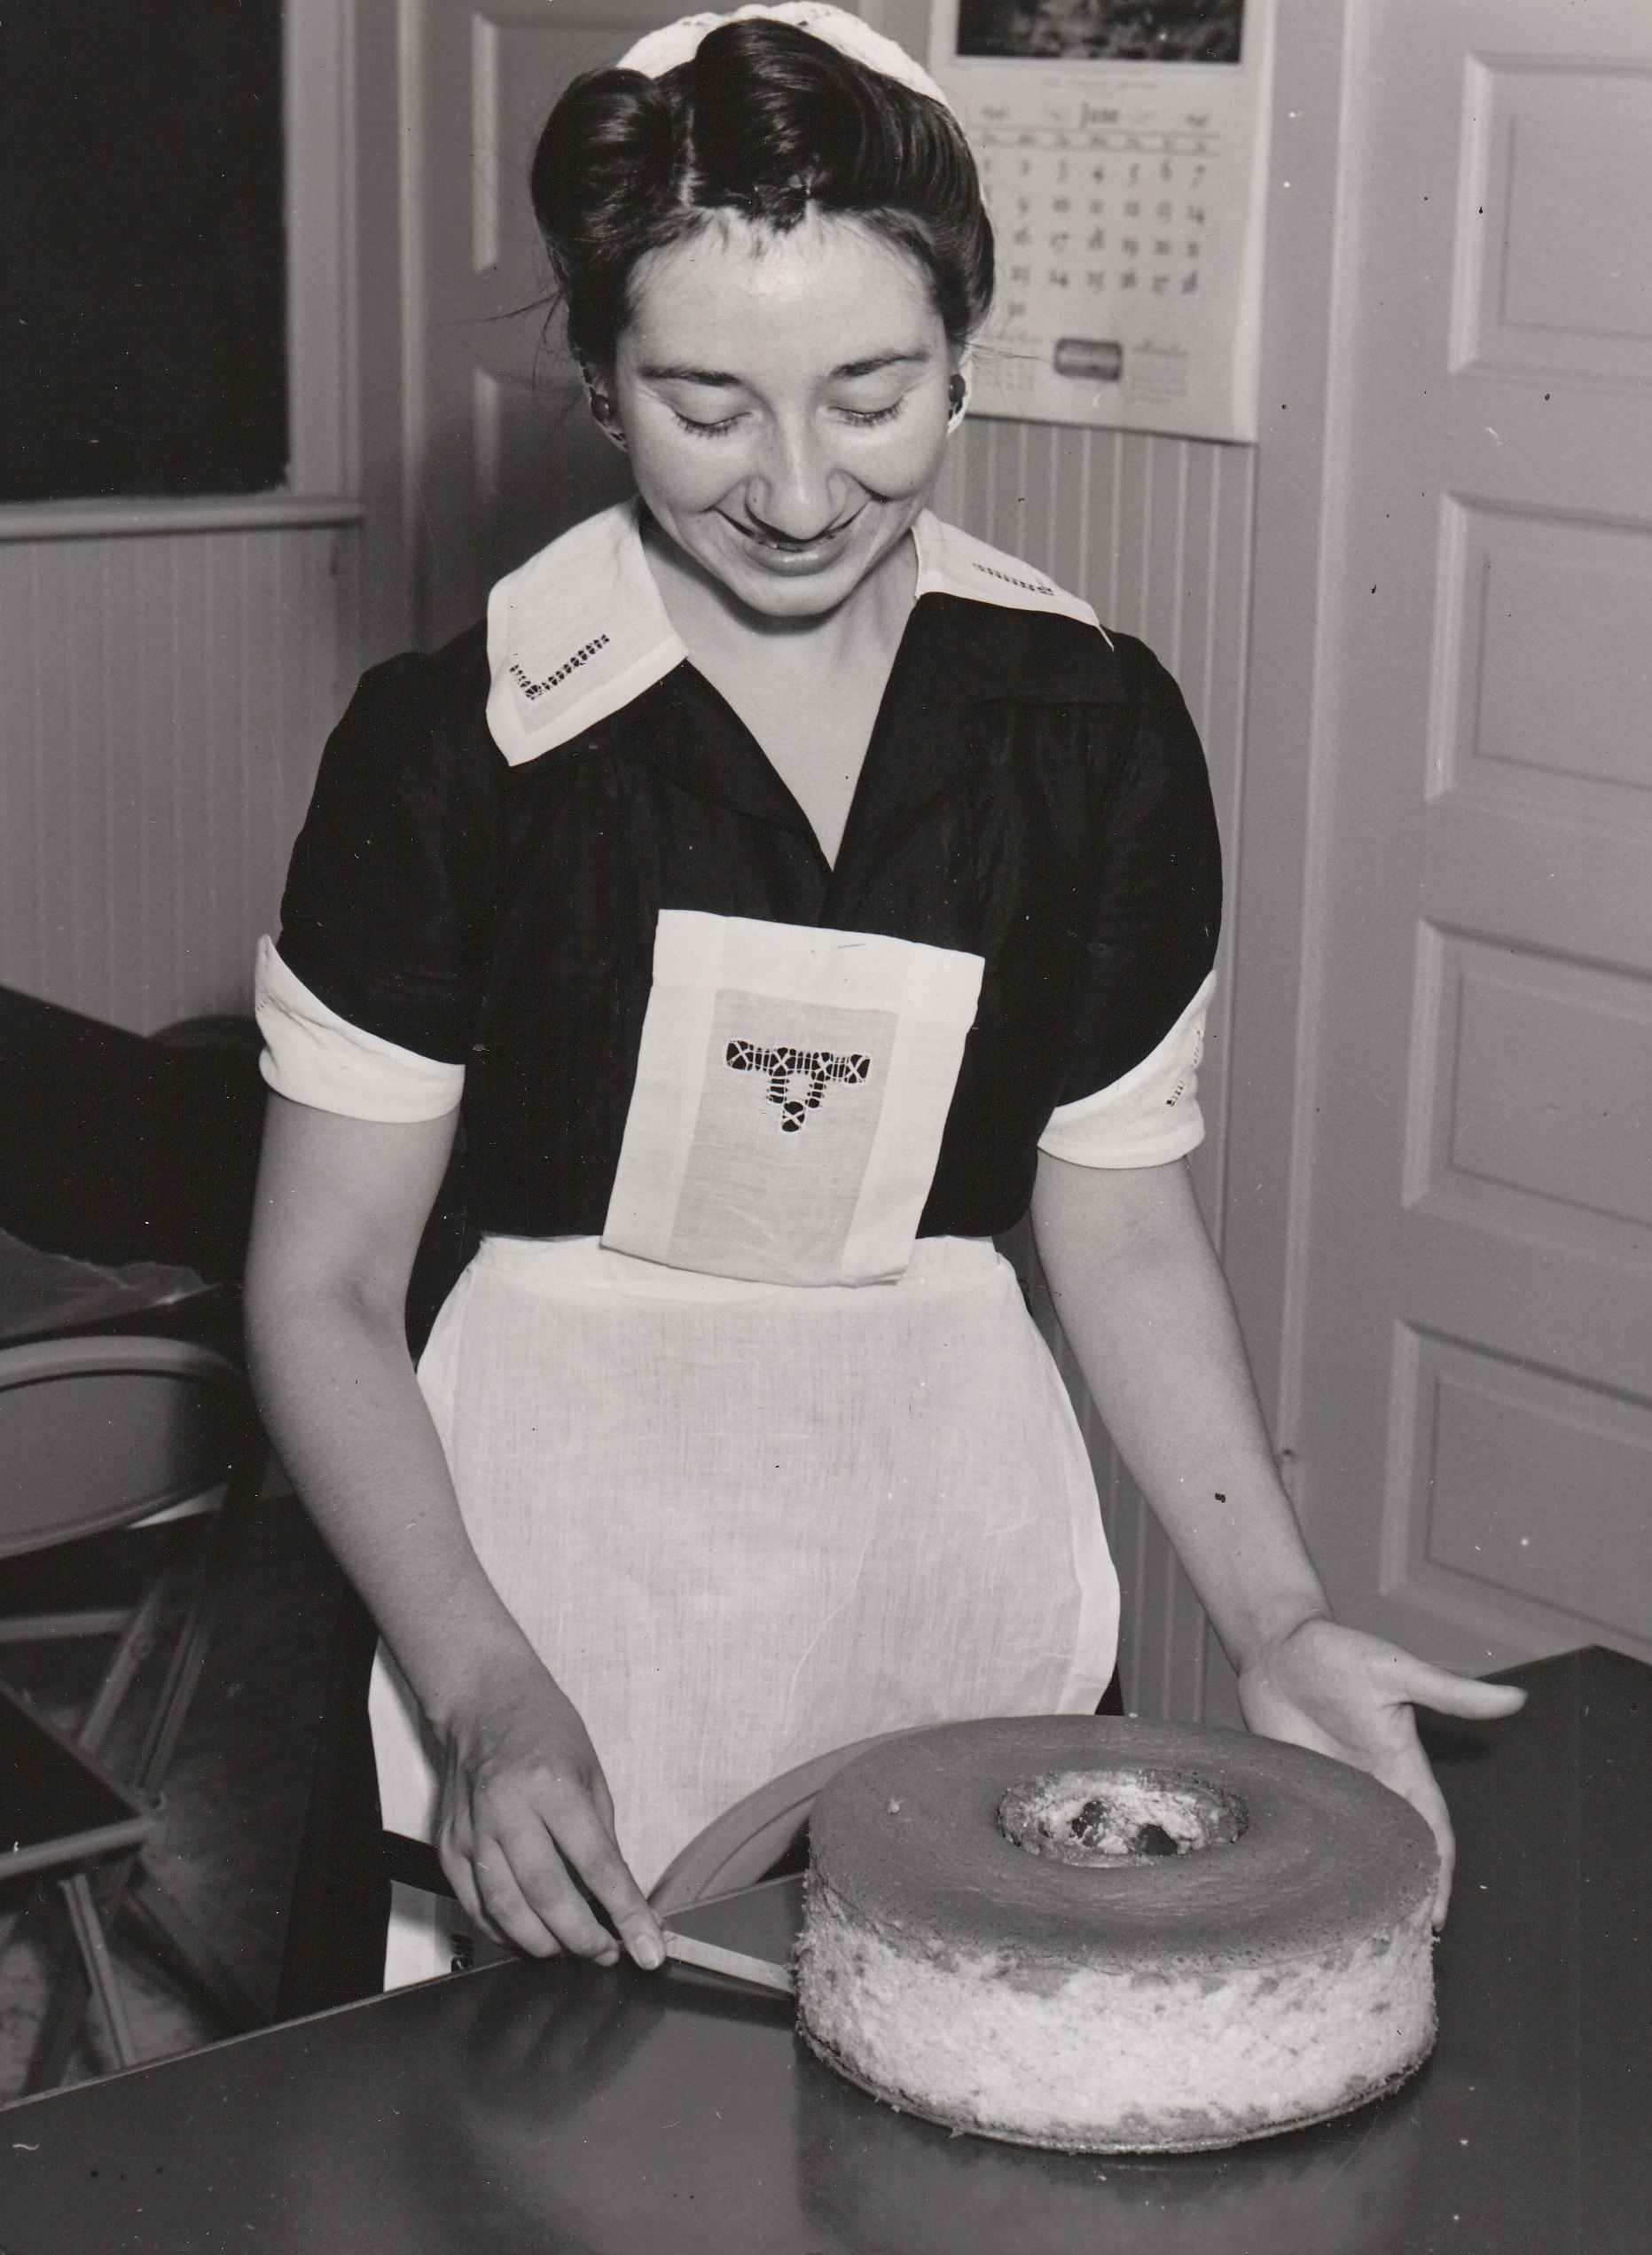 Binnie Mitchell, an NYA student worker at Pasadena Junior College (California), seems quite satisfied with her tempting creation. Photo courtesy of the National Archives (ca. 1935-1943).